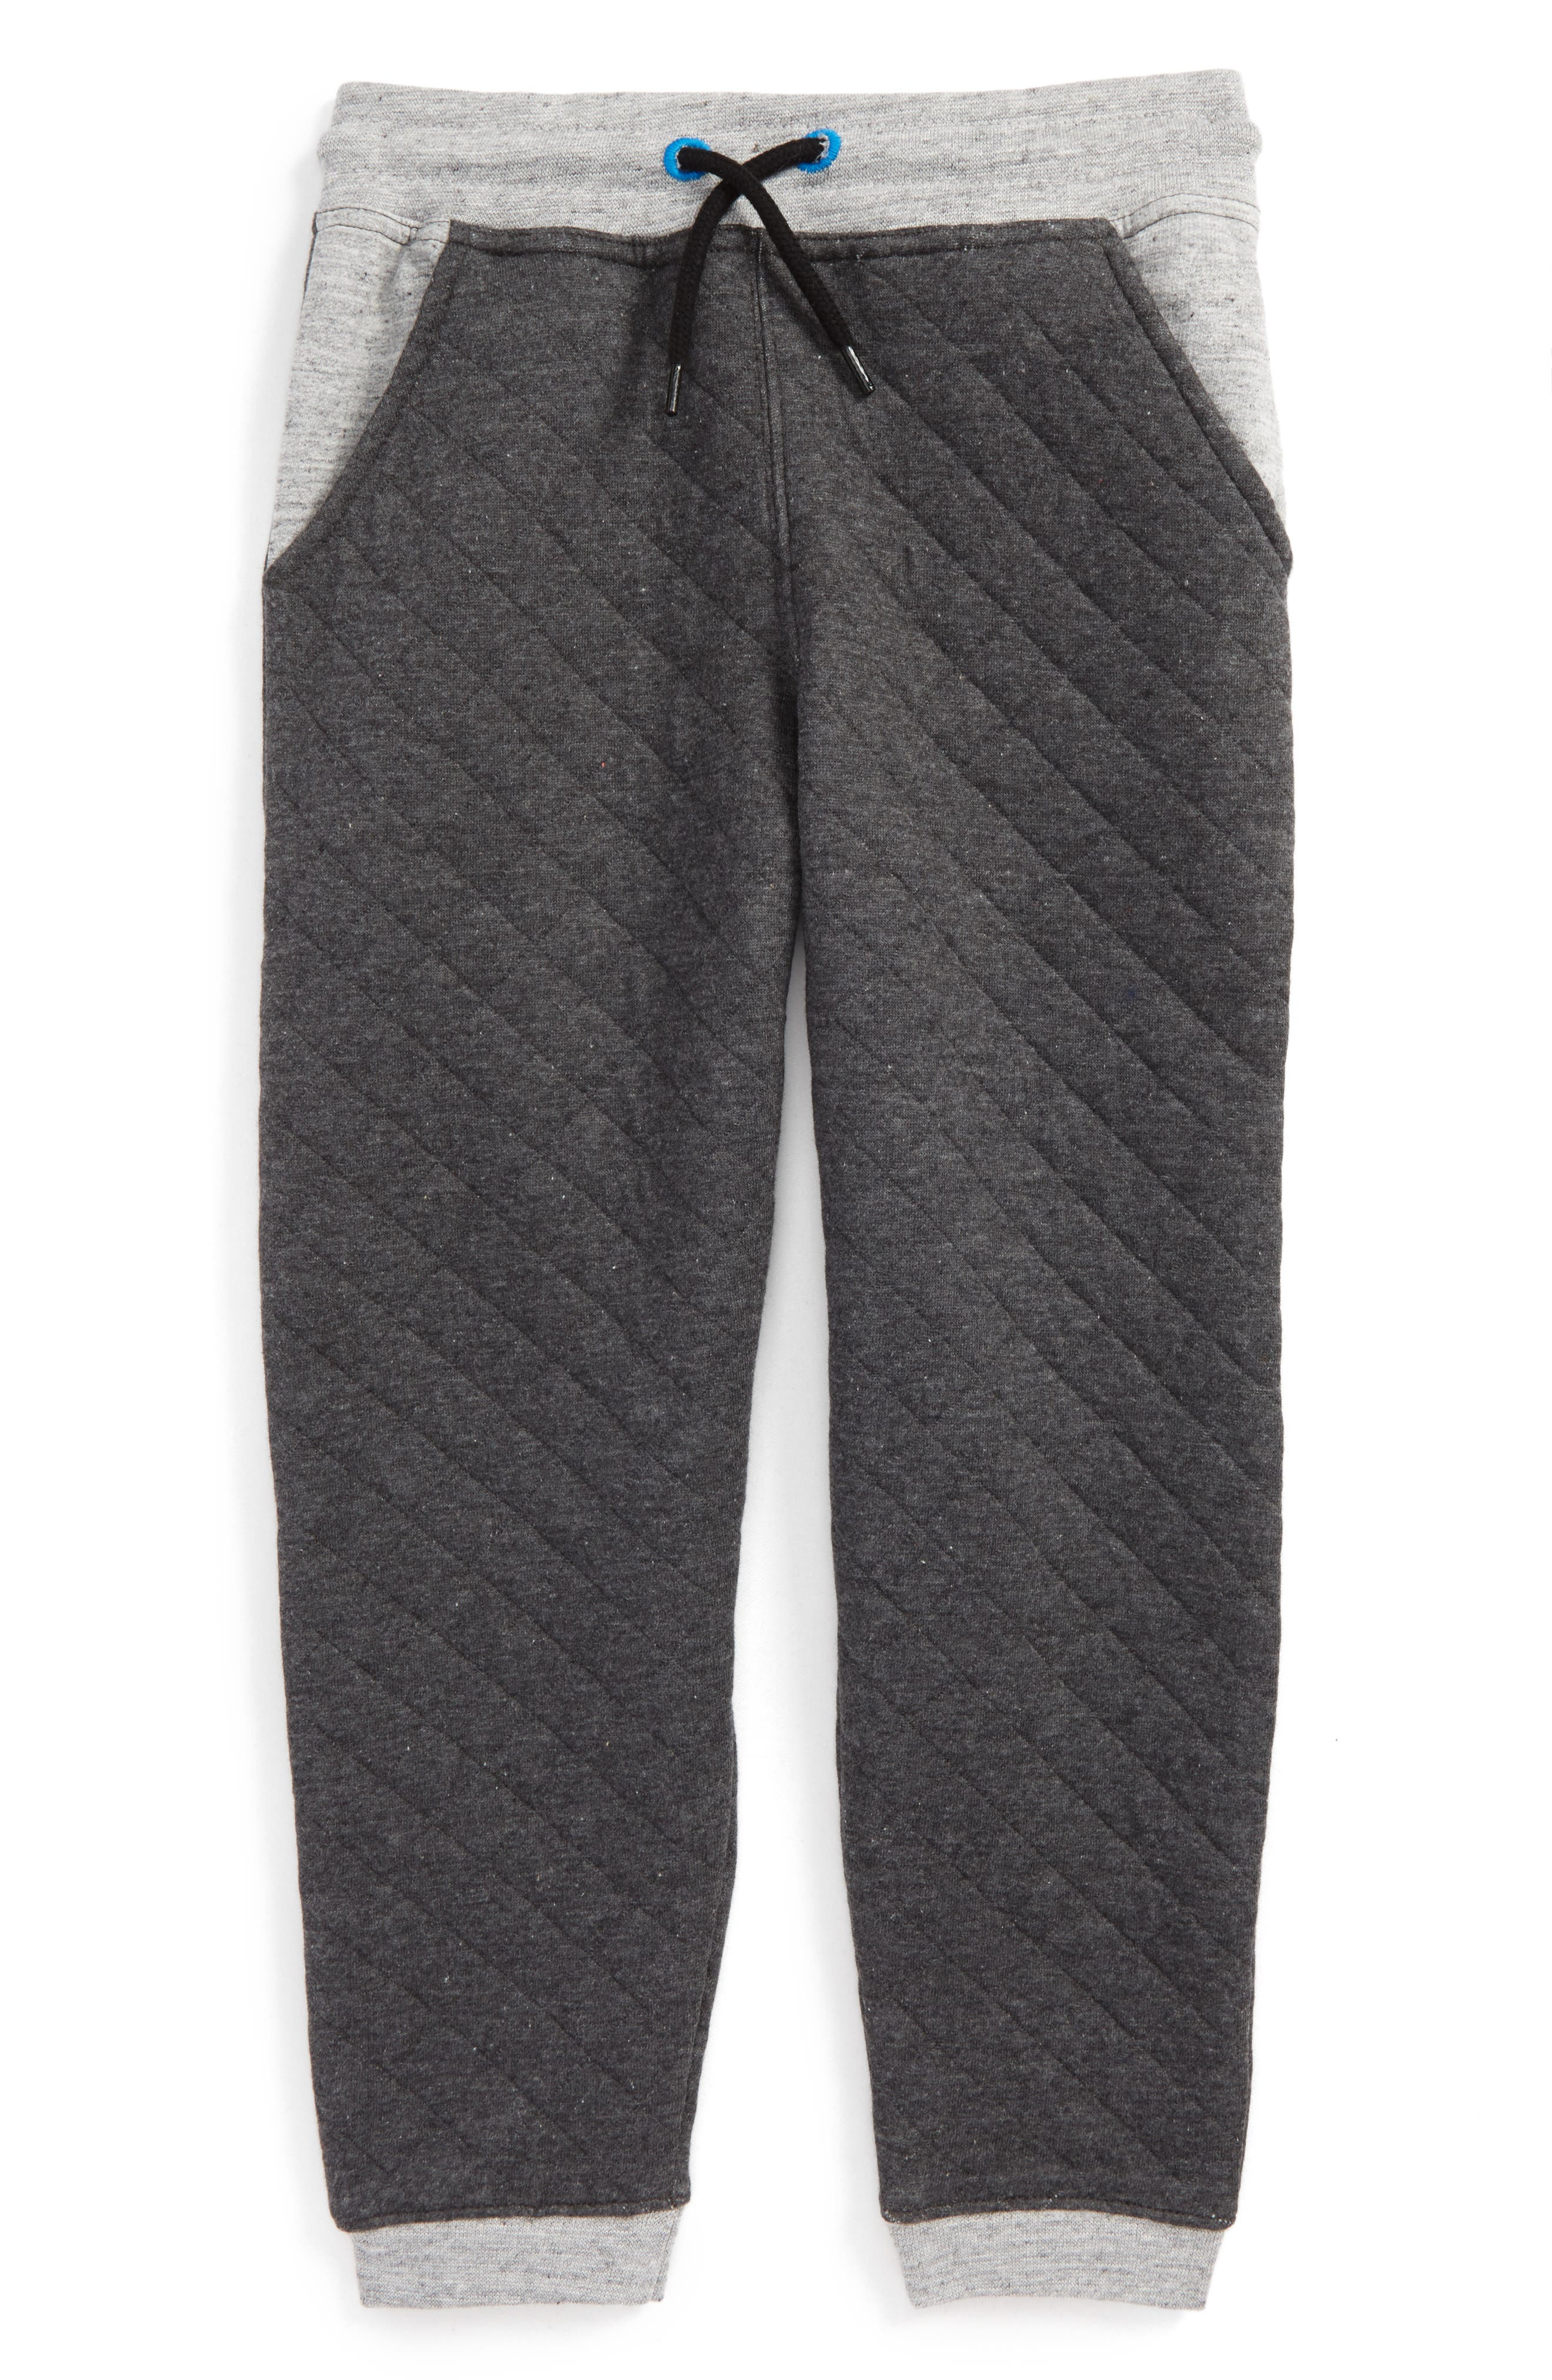 Main Image - Hatley Quilted Athletic Jogger Pants (Toddler Boys, Little Boys & Big Boys)